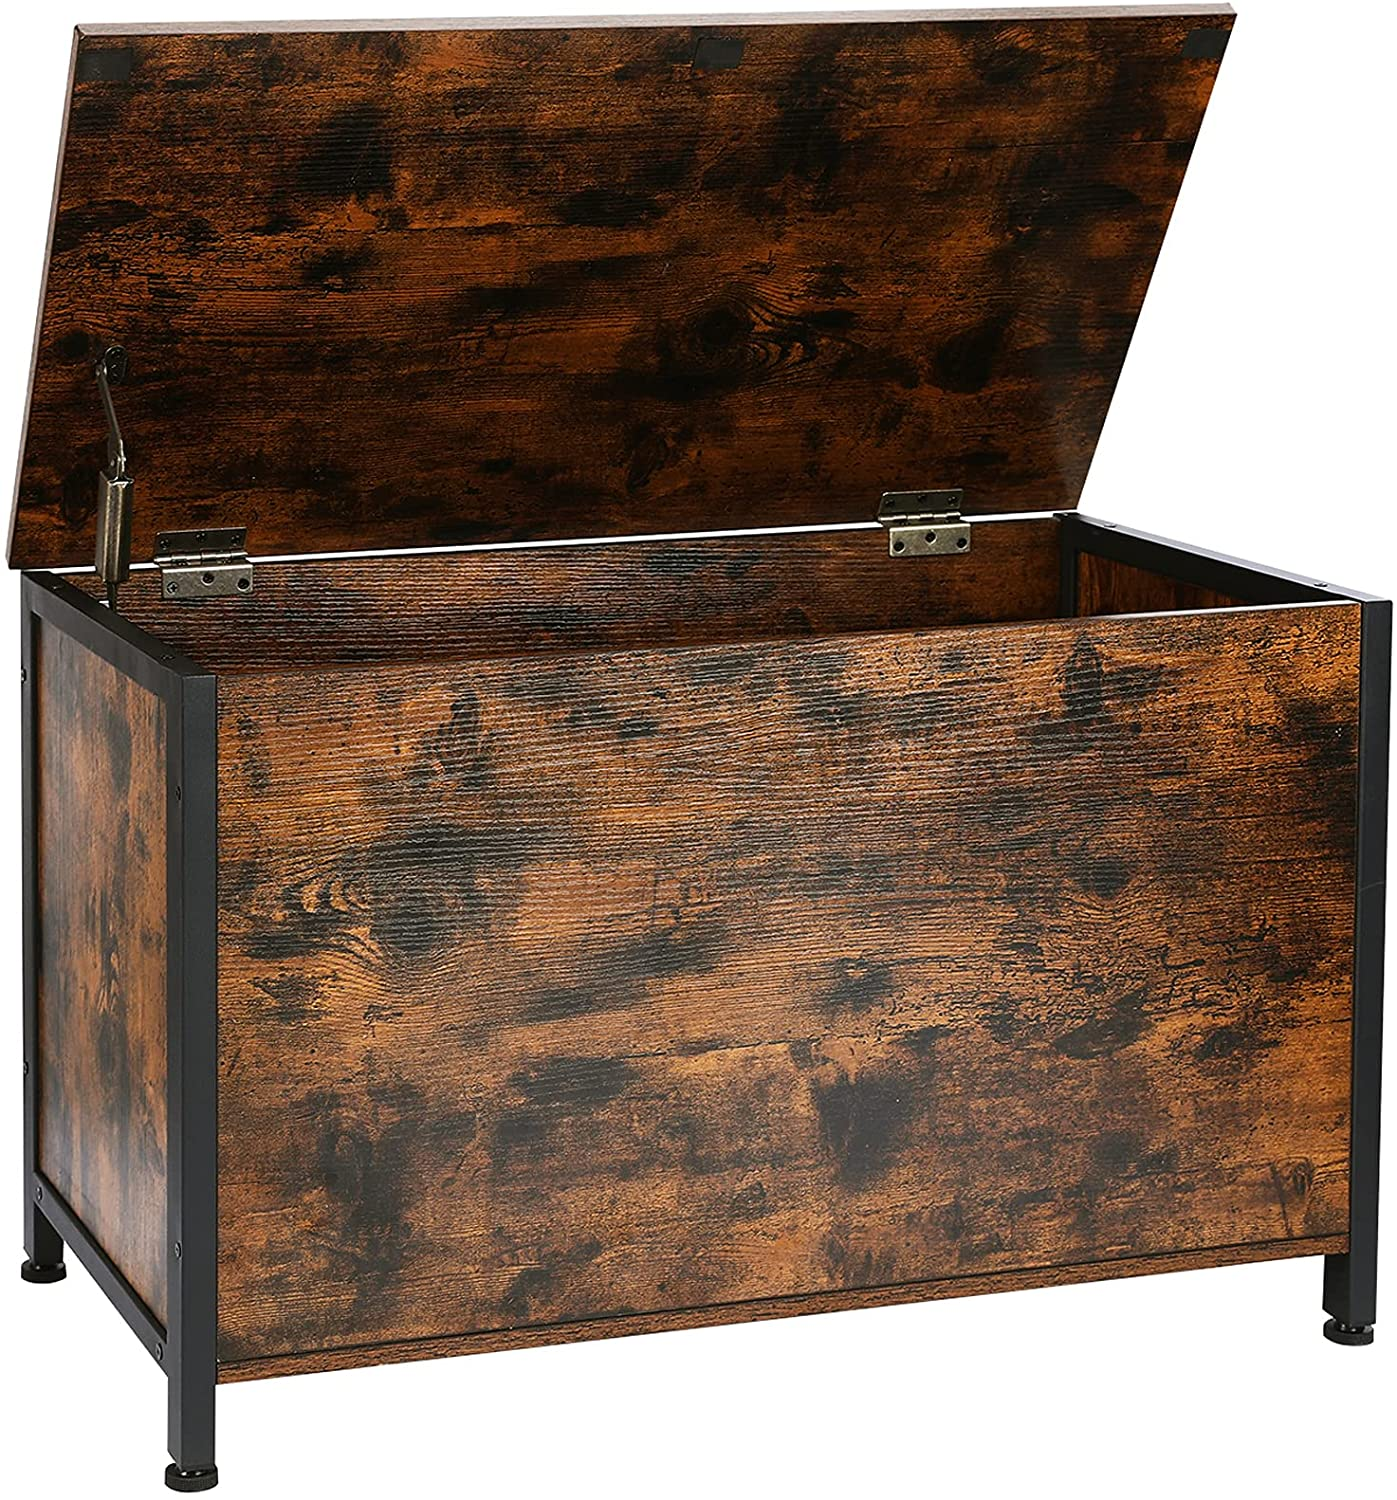 AMHANCIBLE Industrial Storage Chest for Living Room, Retro Toy Box Organizer with Safety Hinge, Sturdy Entryway Storage Bench, Wood Look Accent Furniture, Easy Assembly, Rustic Brown